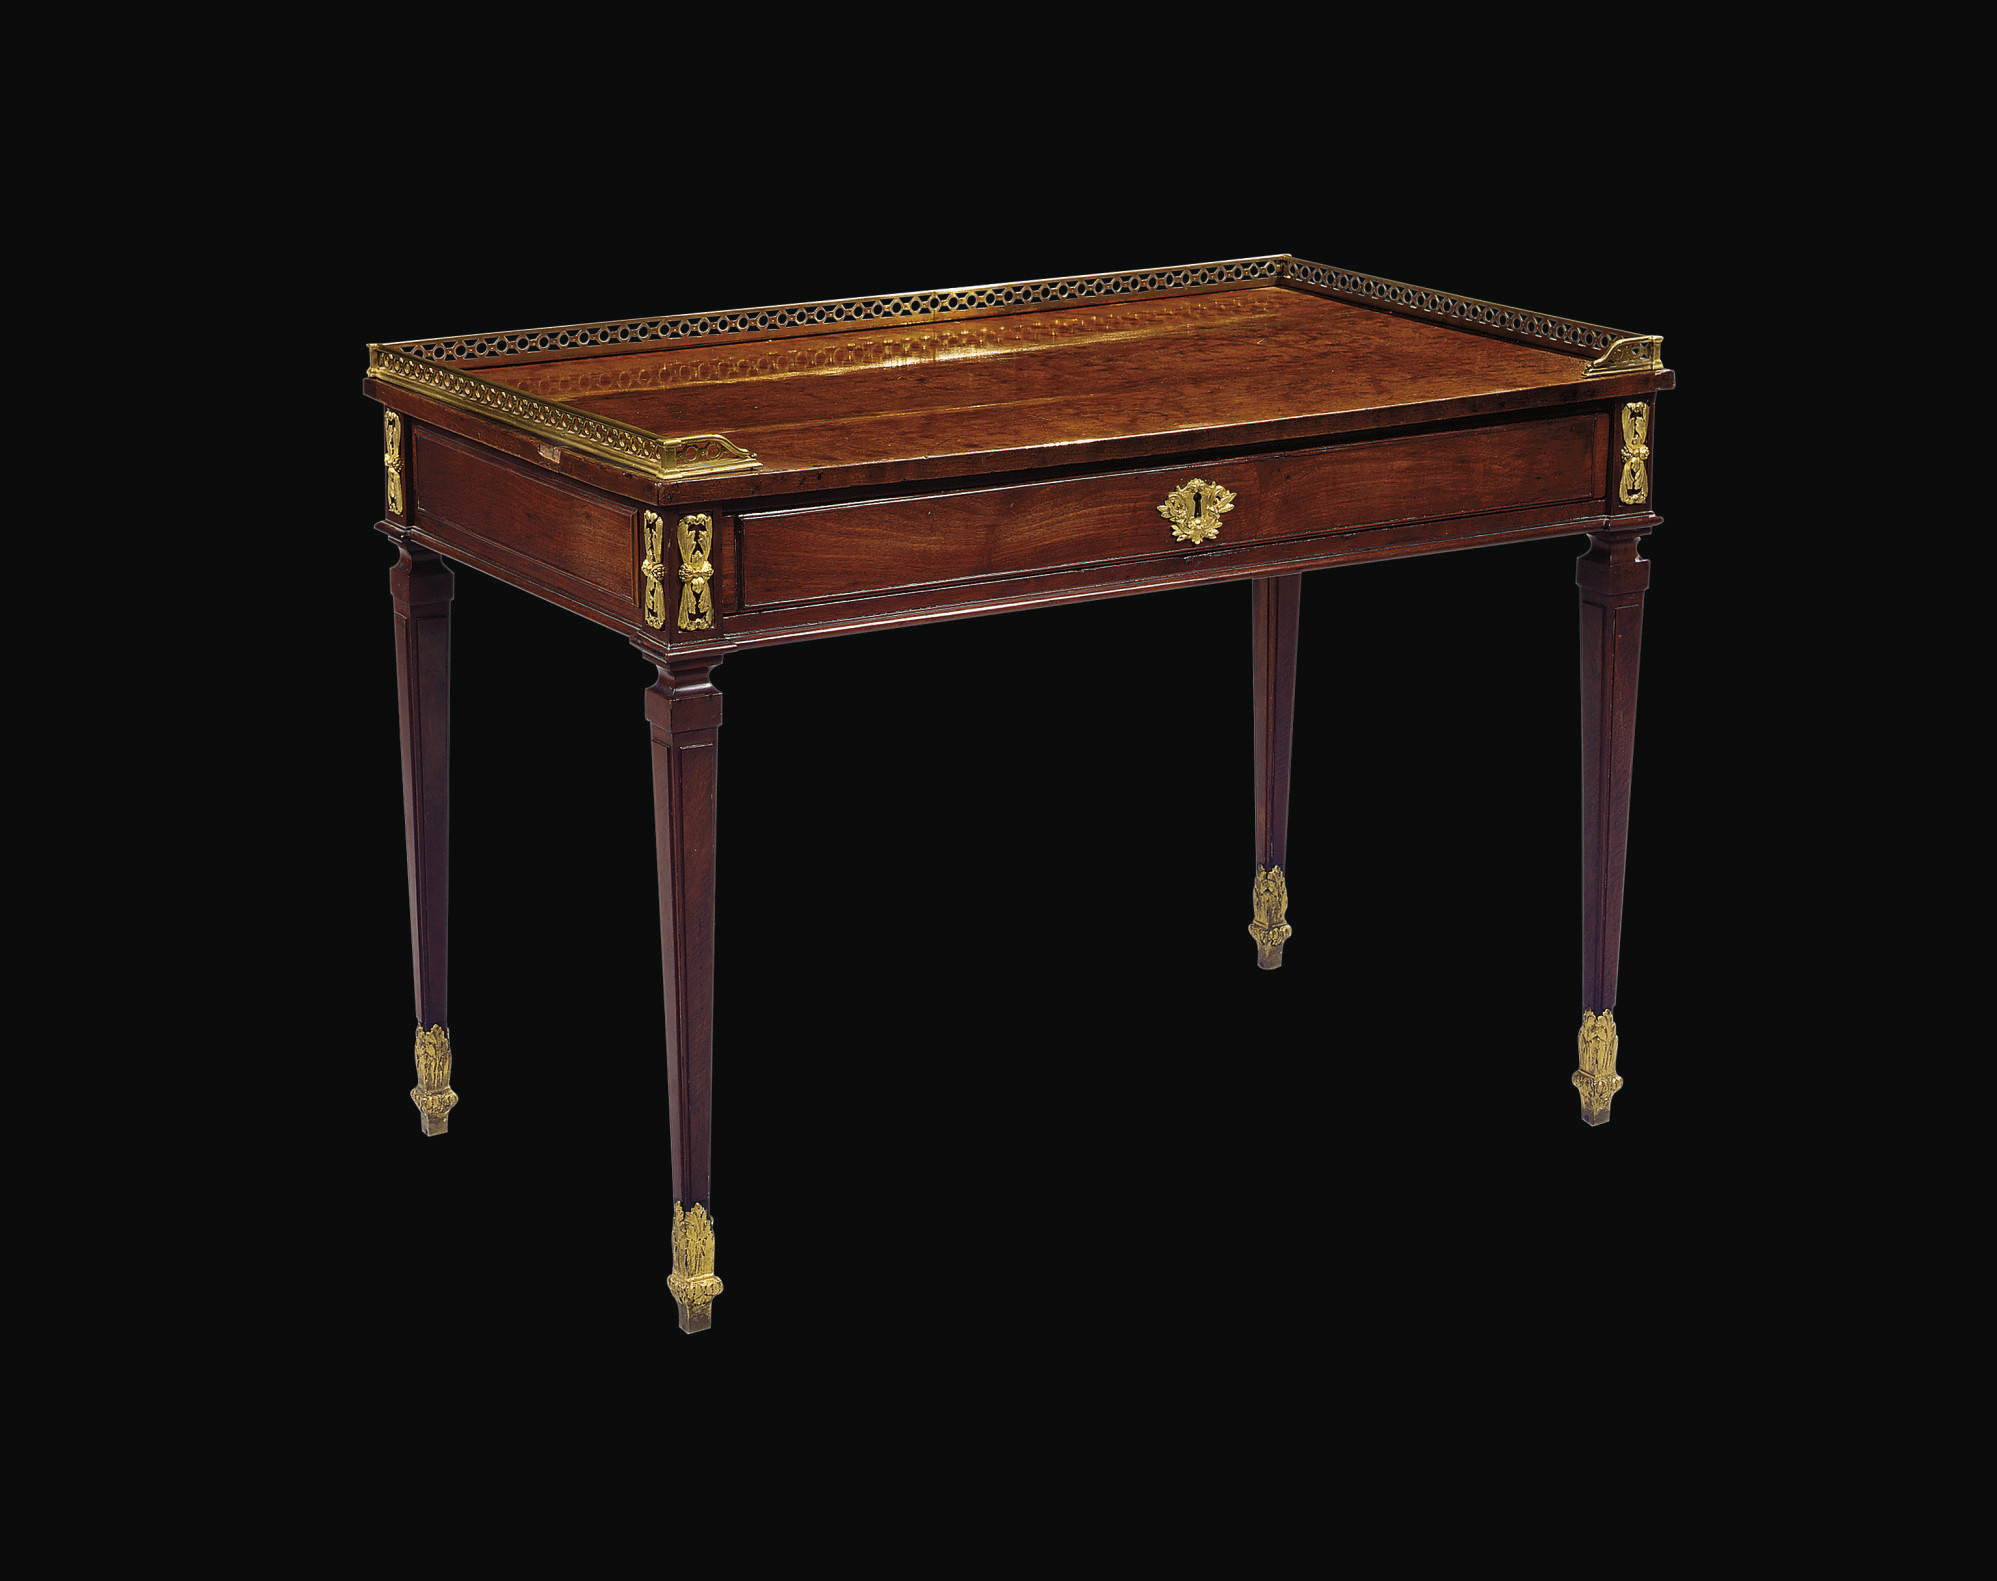 TABLE D'EPOQUE LOUIS XVI